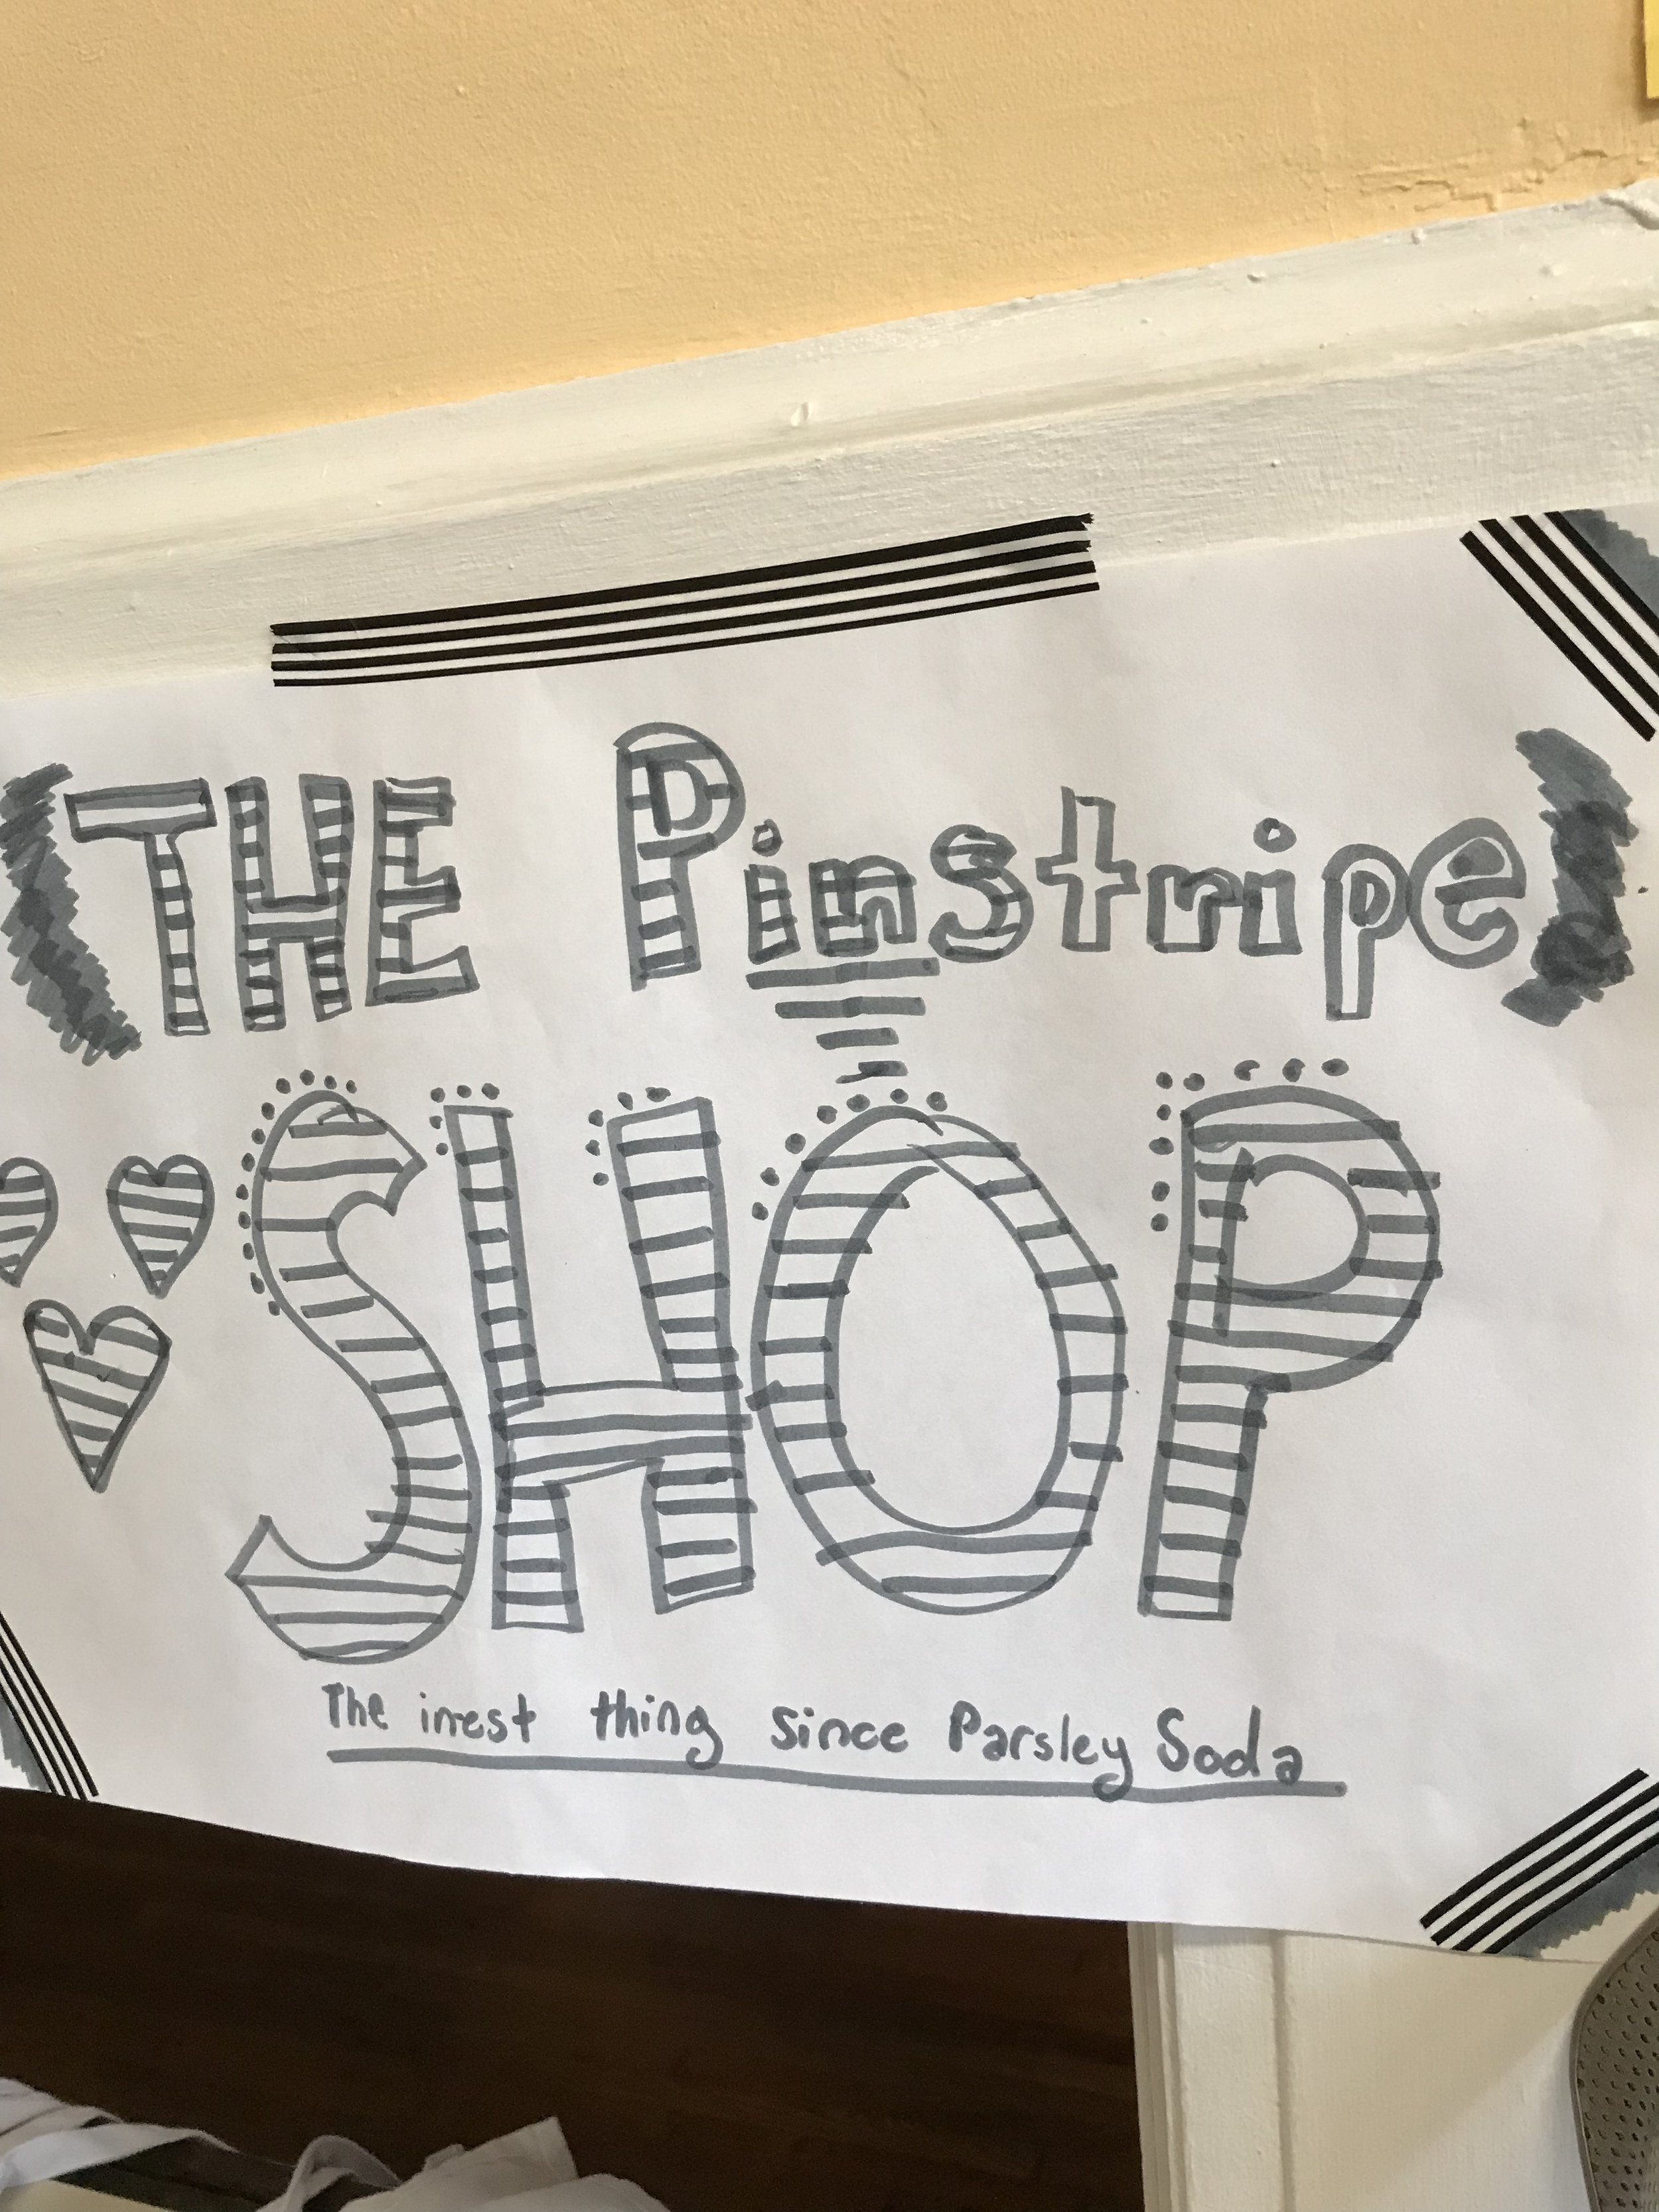 The Pinstripe Shop!